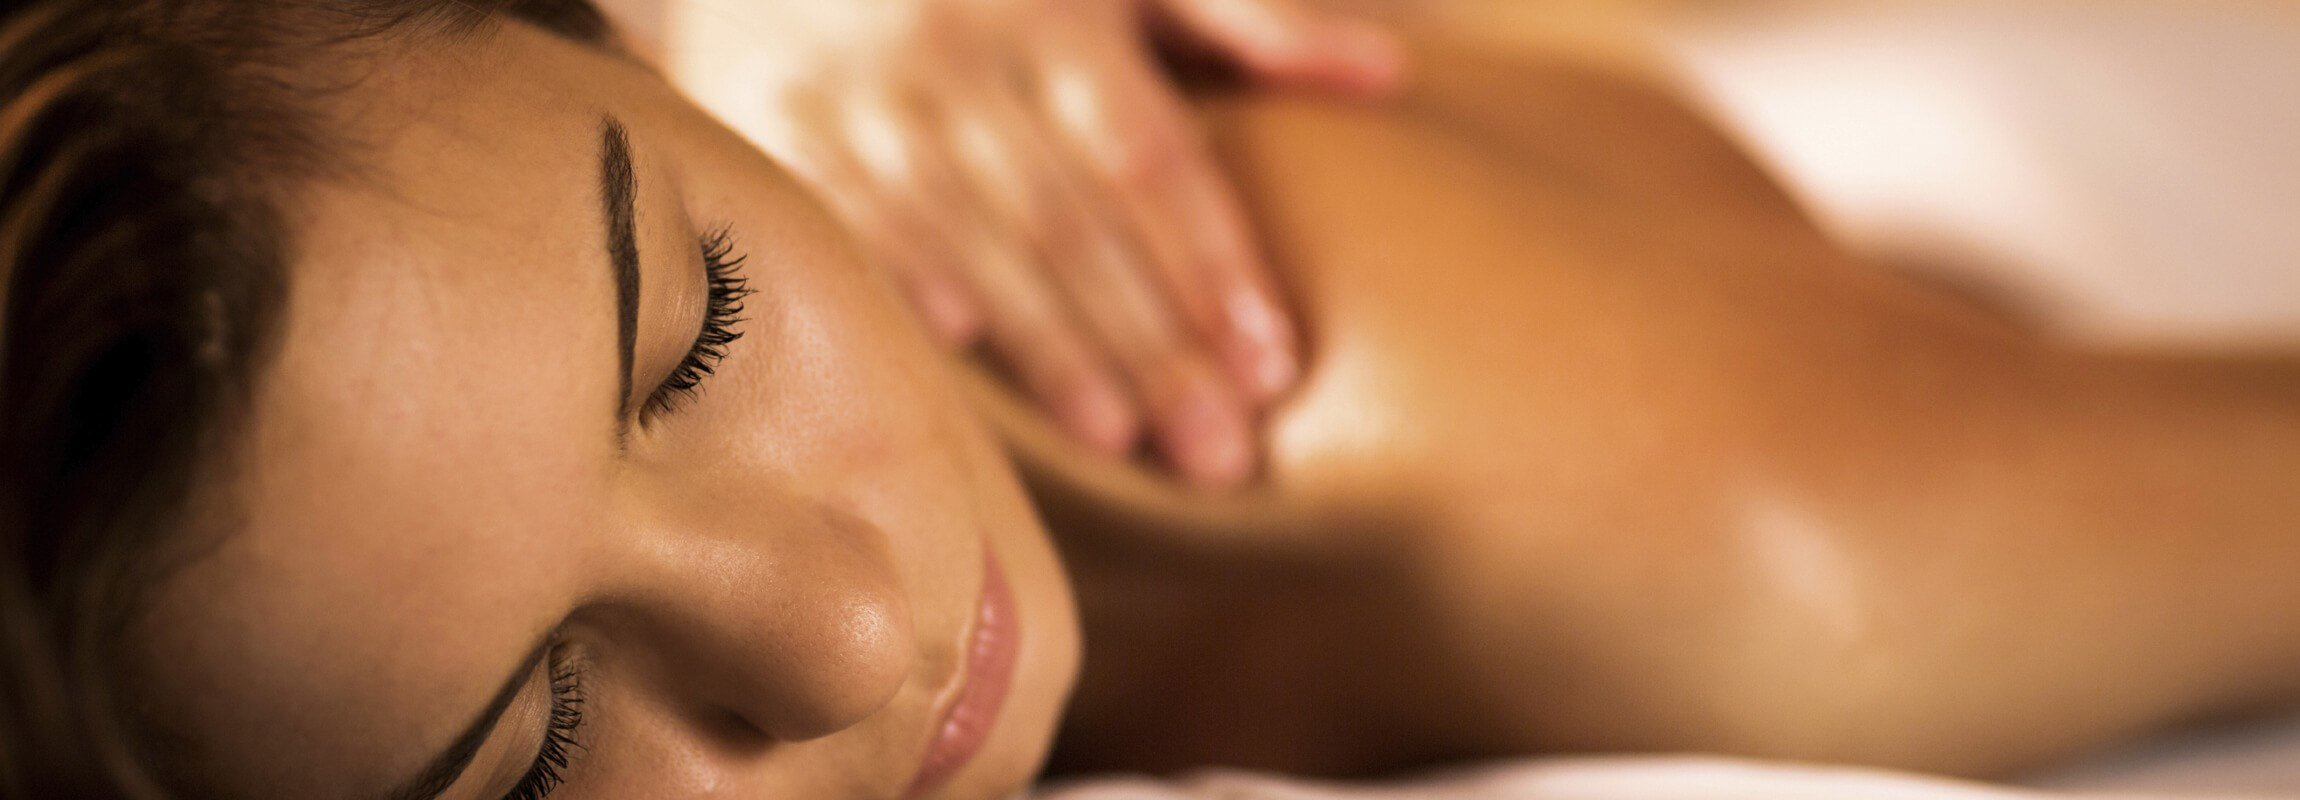 Feeling Over Stressed? - Take advantage of one of our custom massage treatments and relax today.